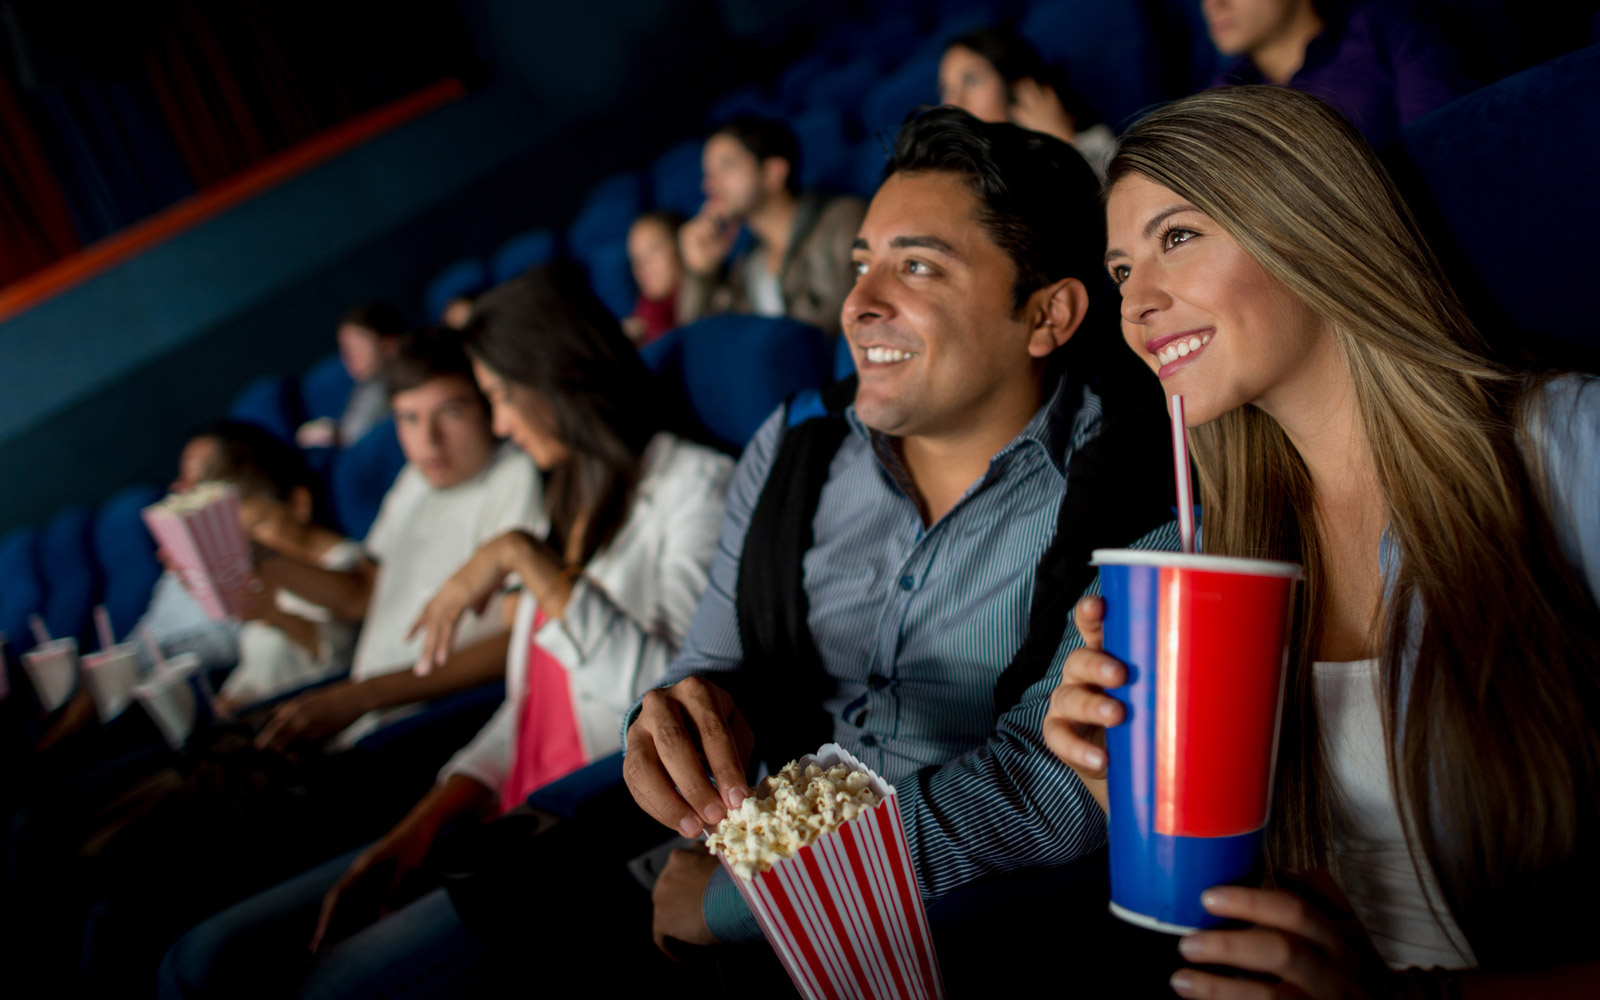 Happy couple on a date at the movies